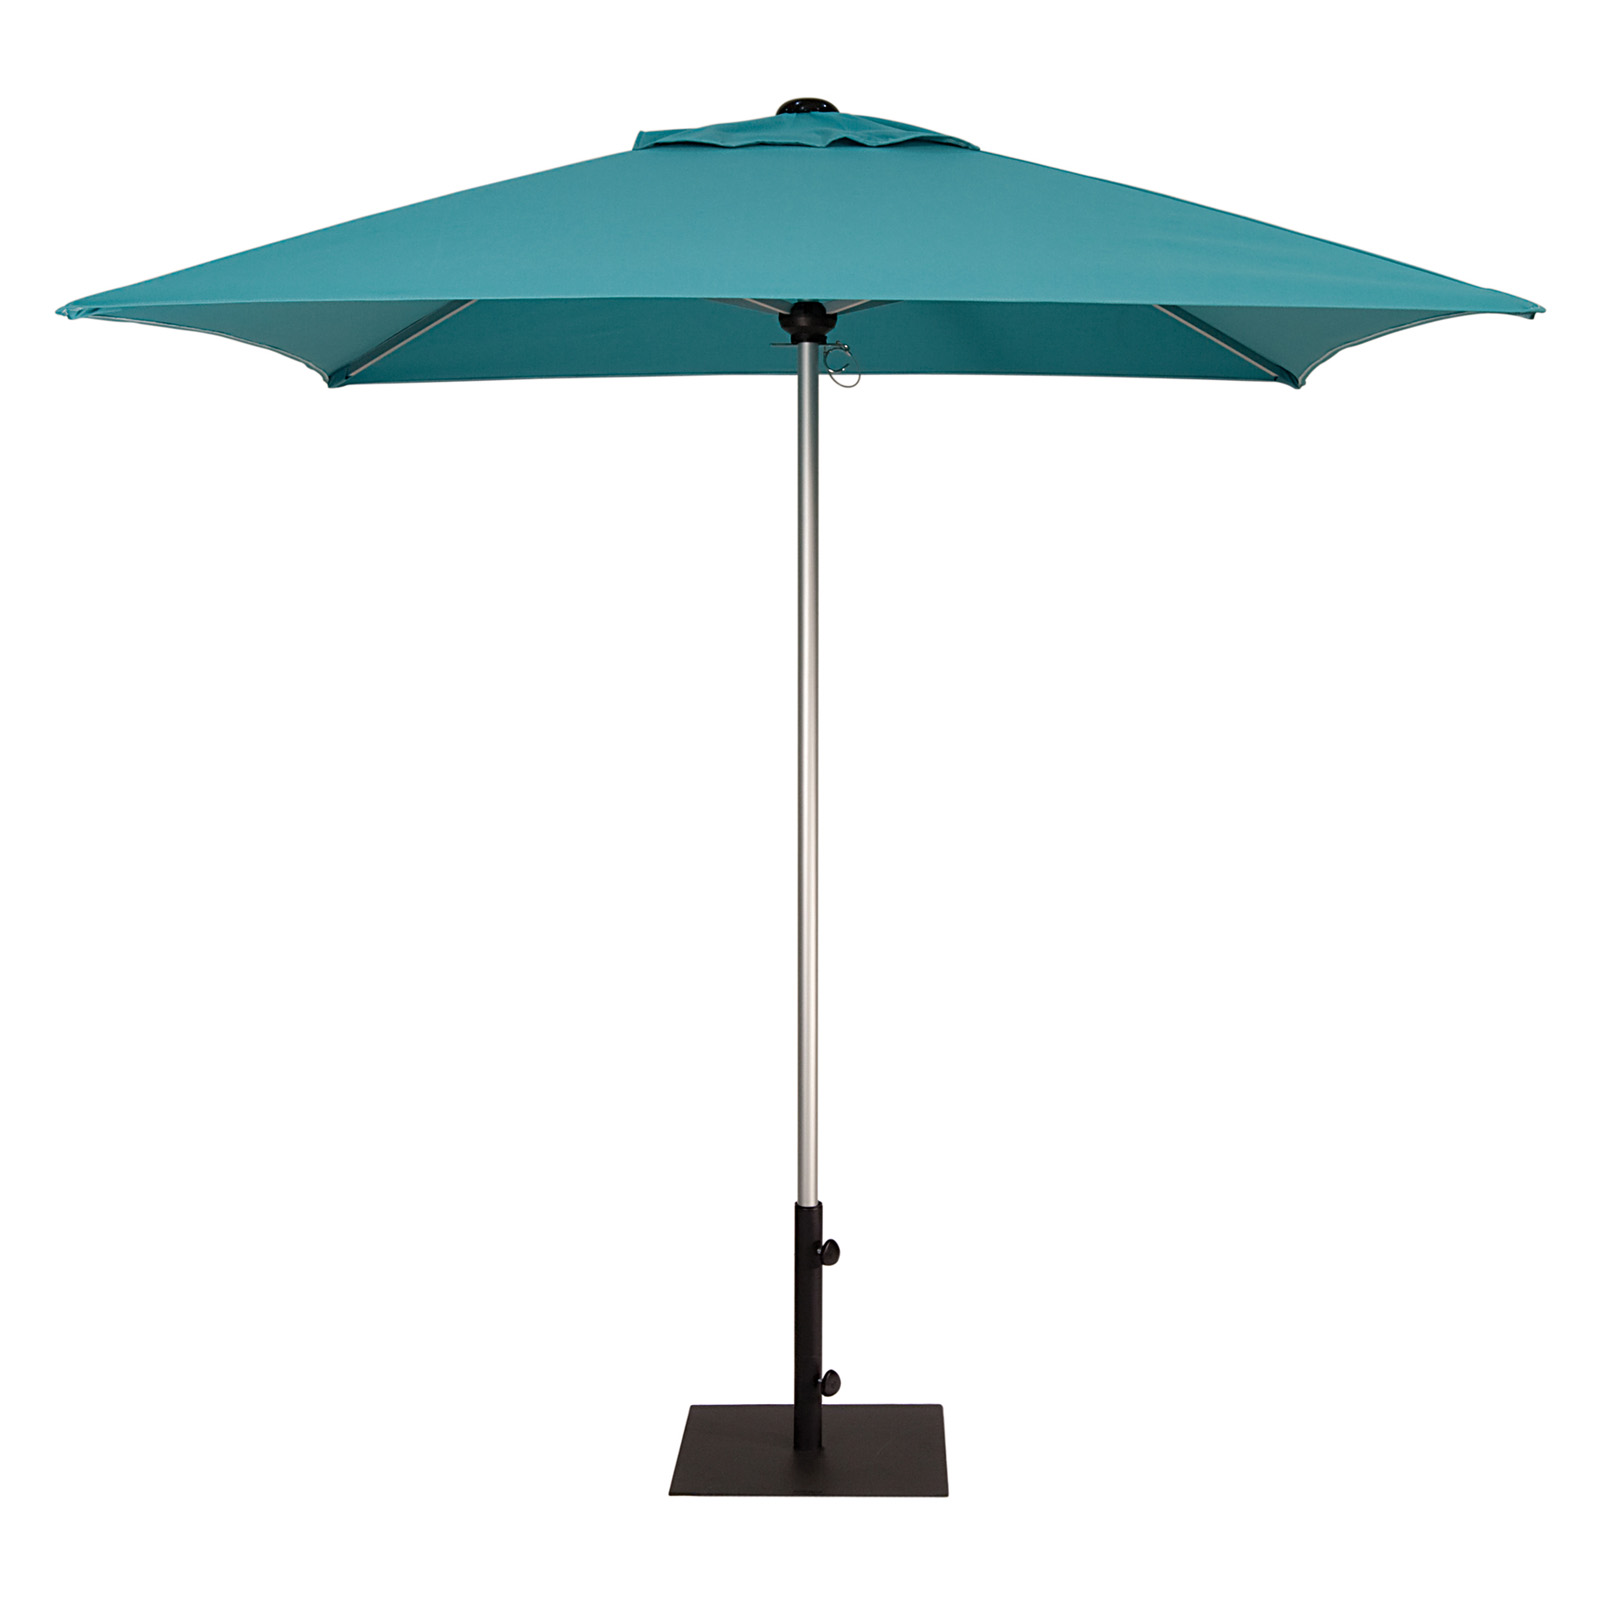 patio umbrellas for sale shop at hayneedle